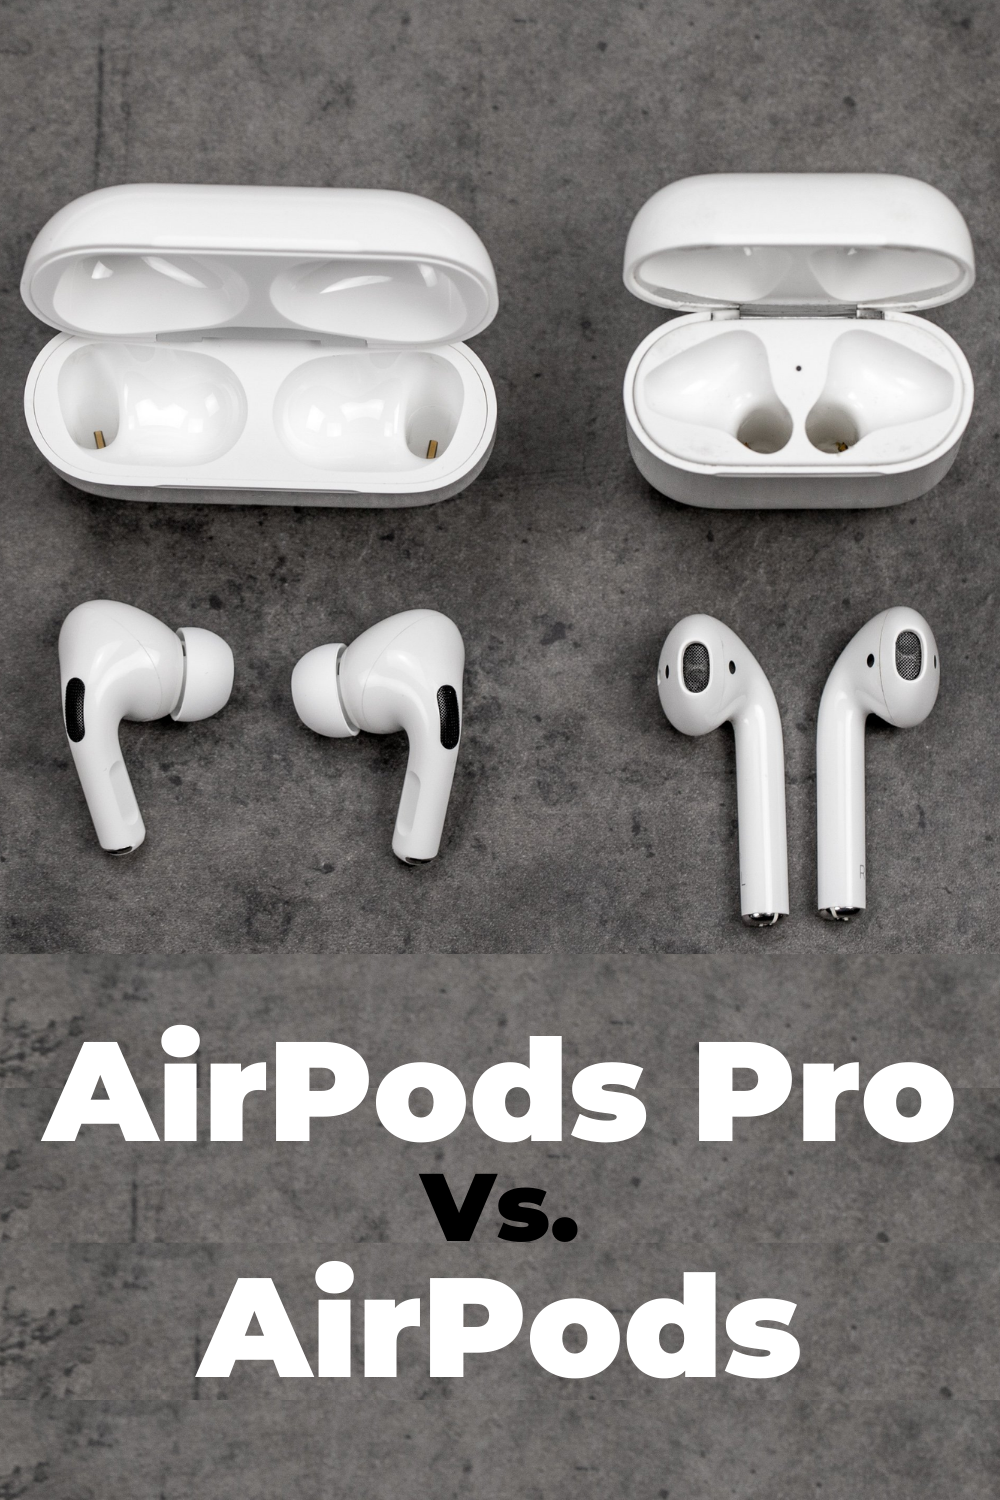 Airpods Pro Vs Airpods And Bose Why I Decided To Upgrade Airpods Pro Bose Headphones Wireless Apple Launch